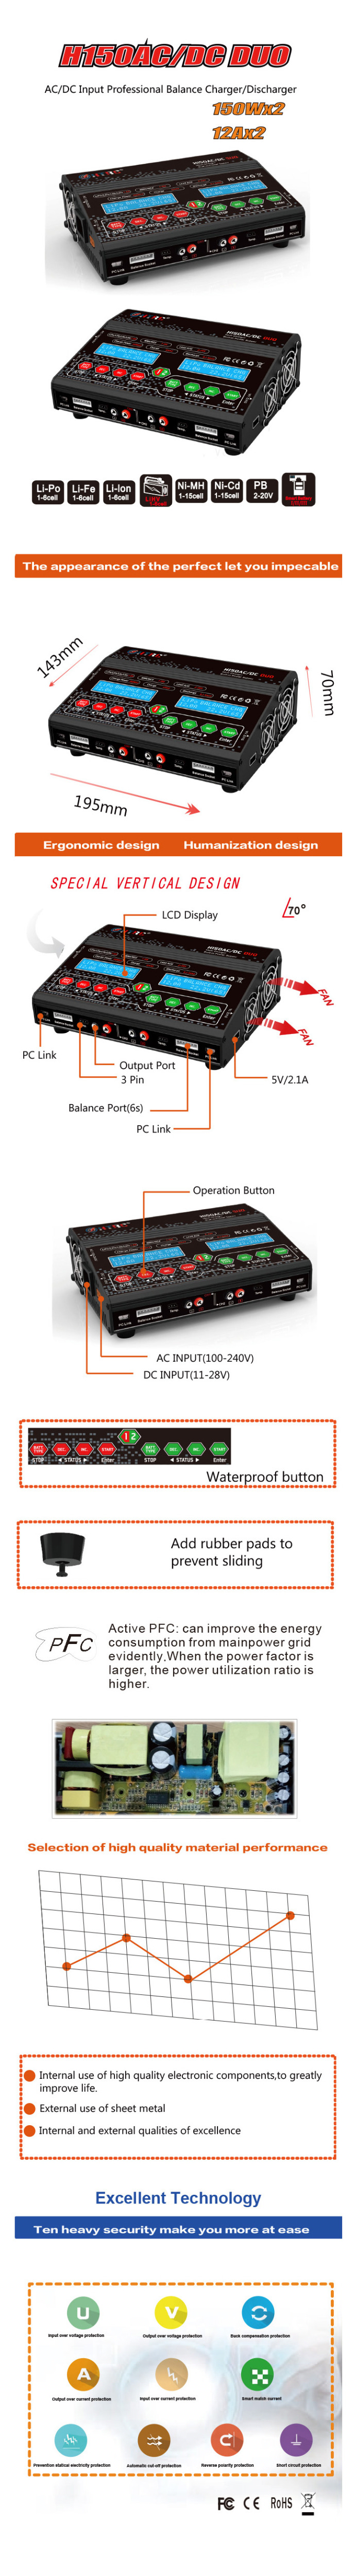 HTRC H150 AC DC DUO 150W 12A Balance charger (1)